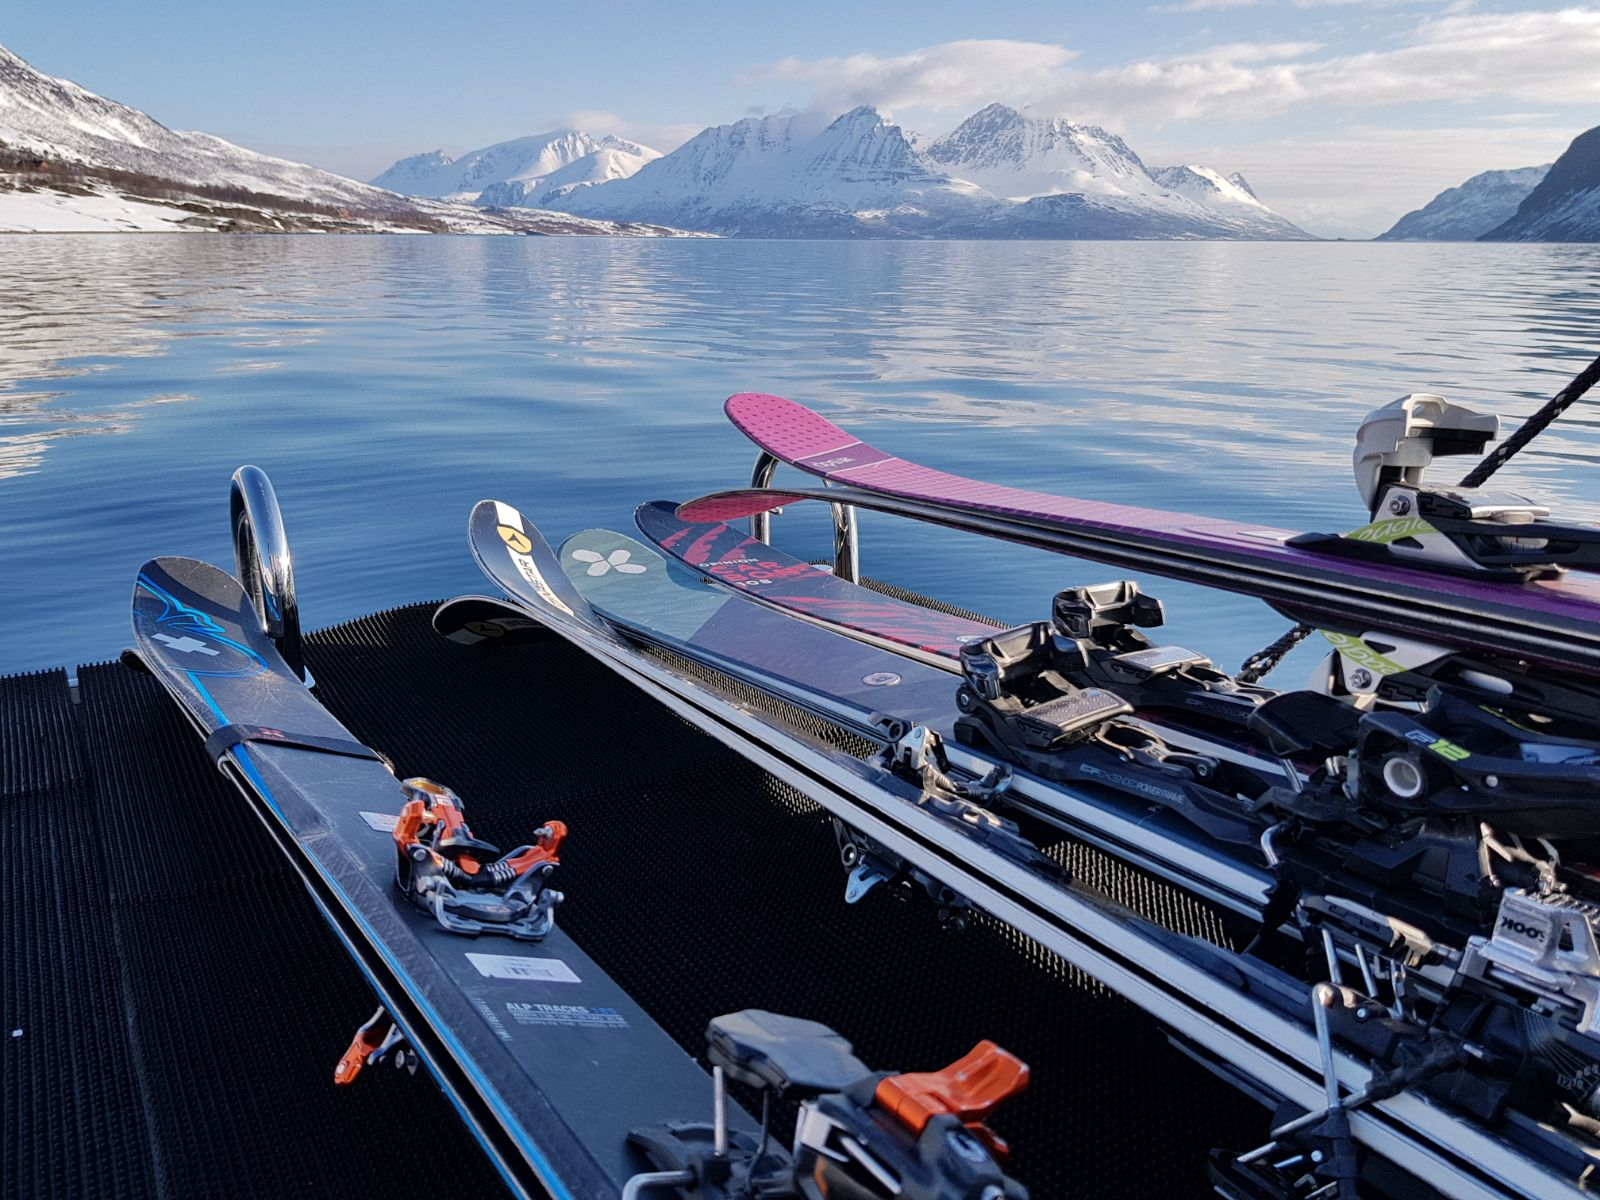 Morning onboard, skis at the ready.